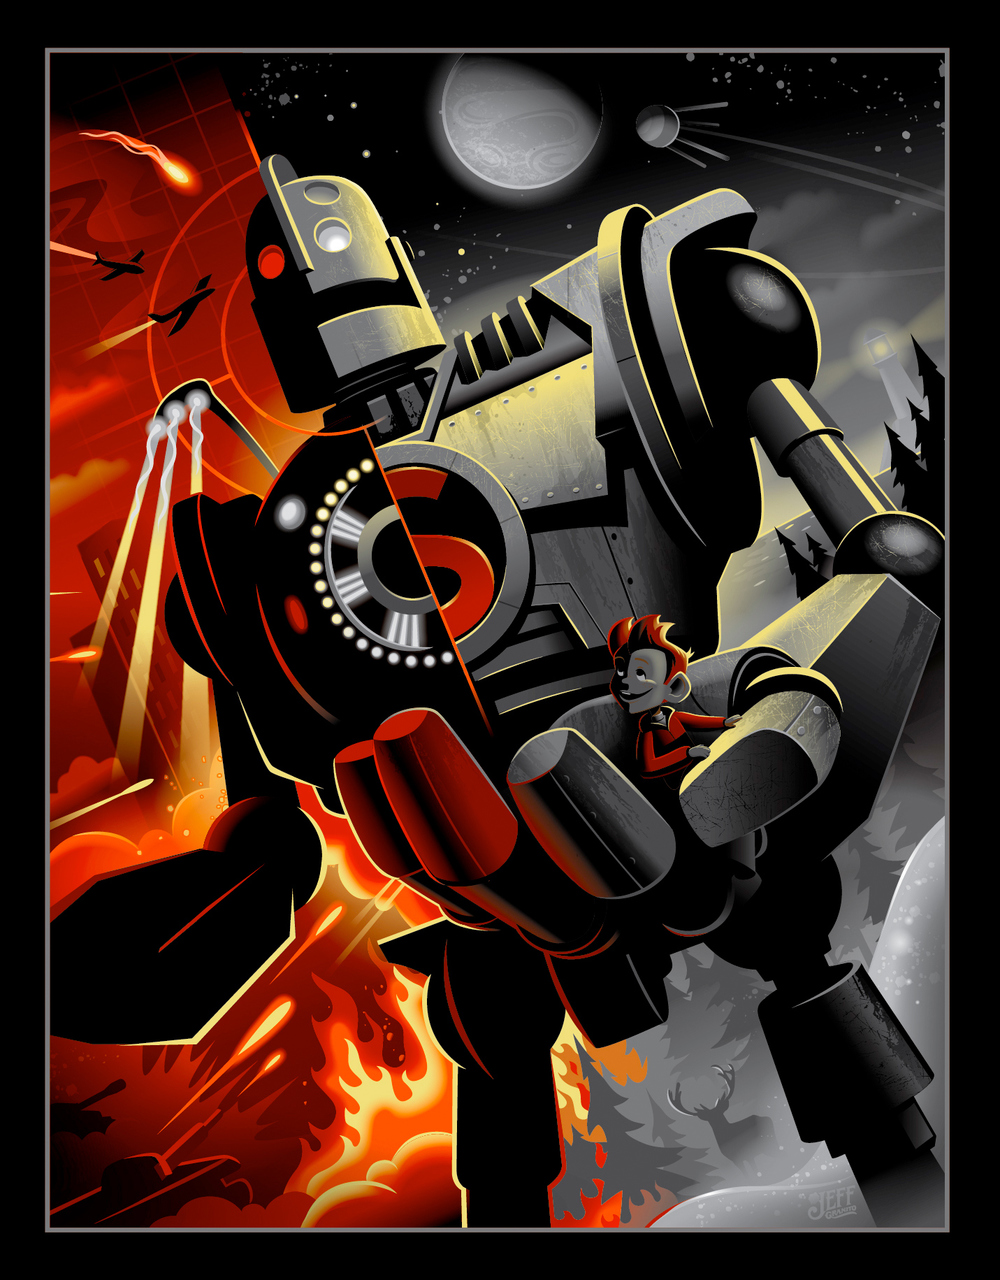 poster-art-for-the-iron-giant-created-by-brad-bird-and-jeff-granito2